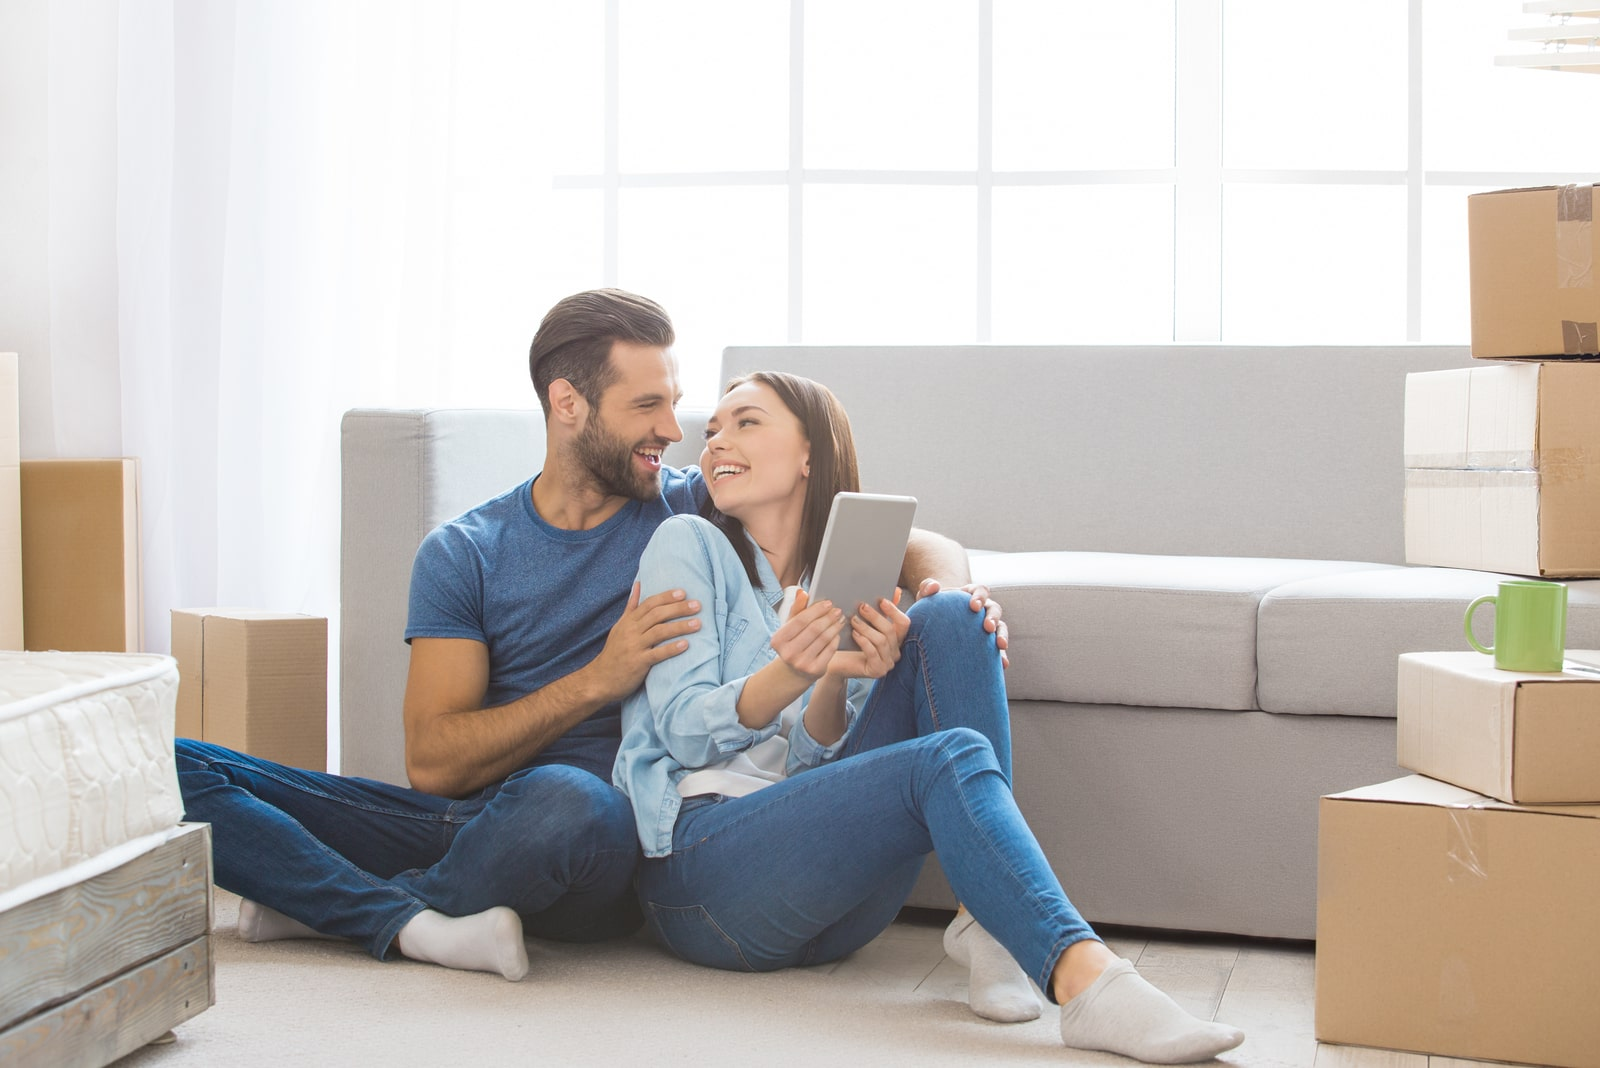 Young couple moving into a new apartment together